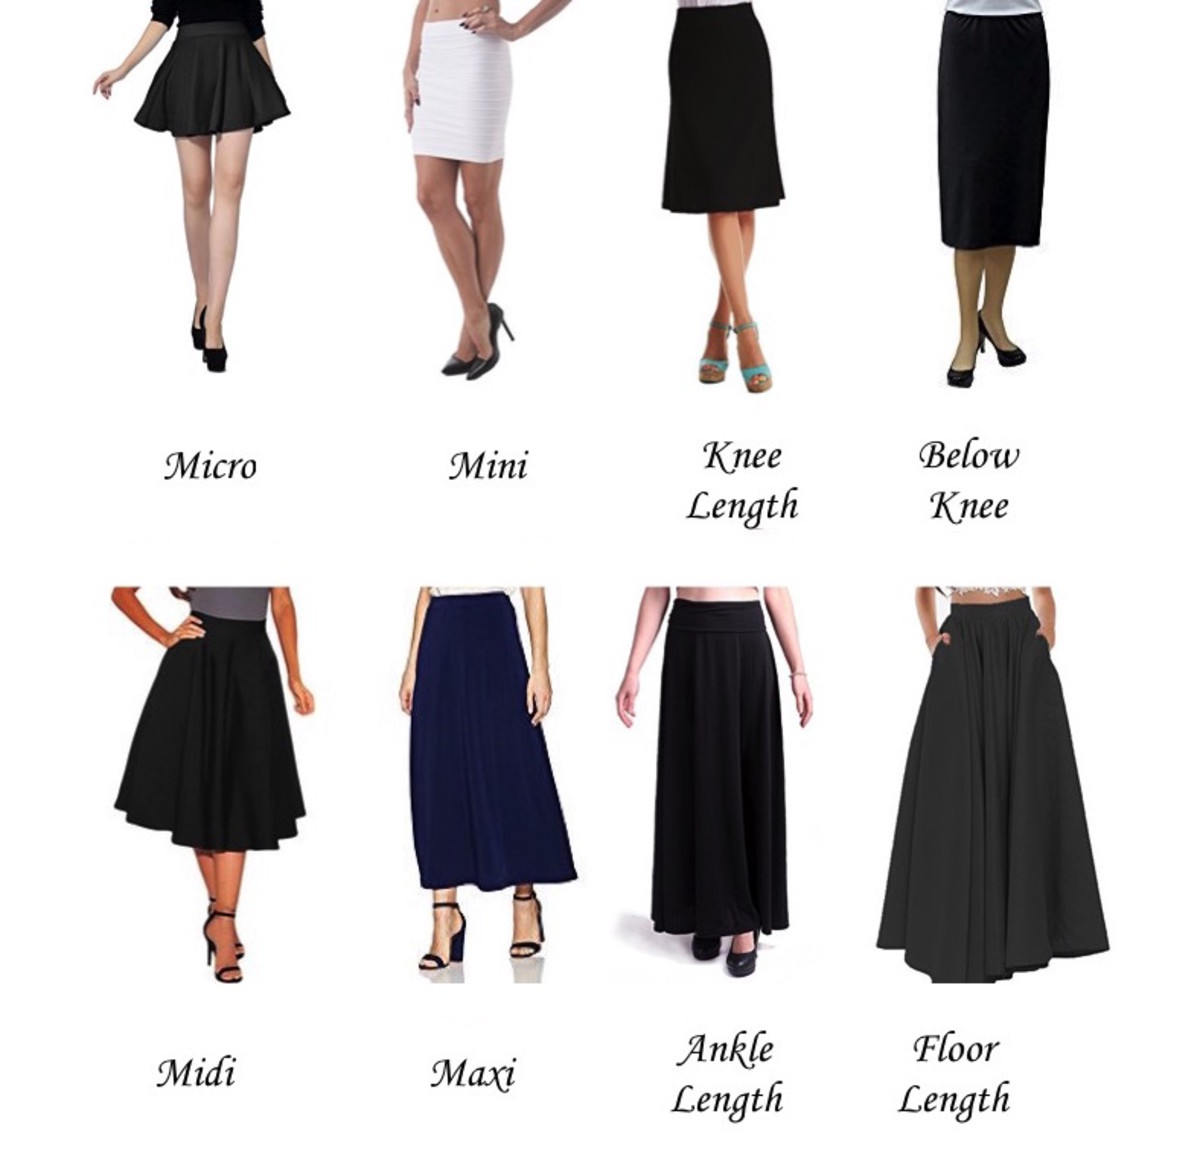 A-Z List of Types and Silhouettes of Skirts in Fashion